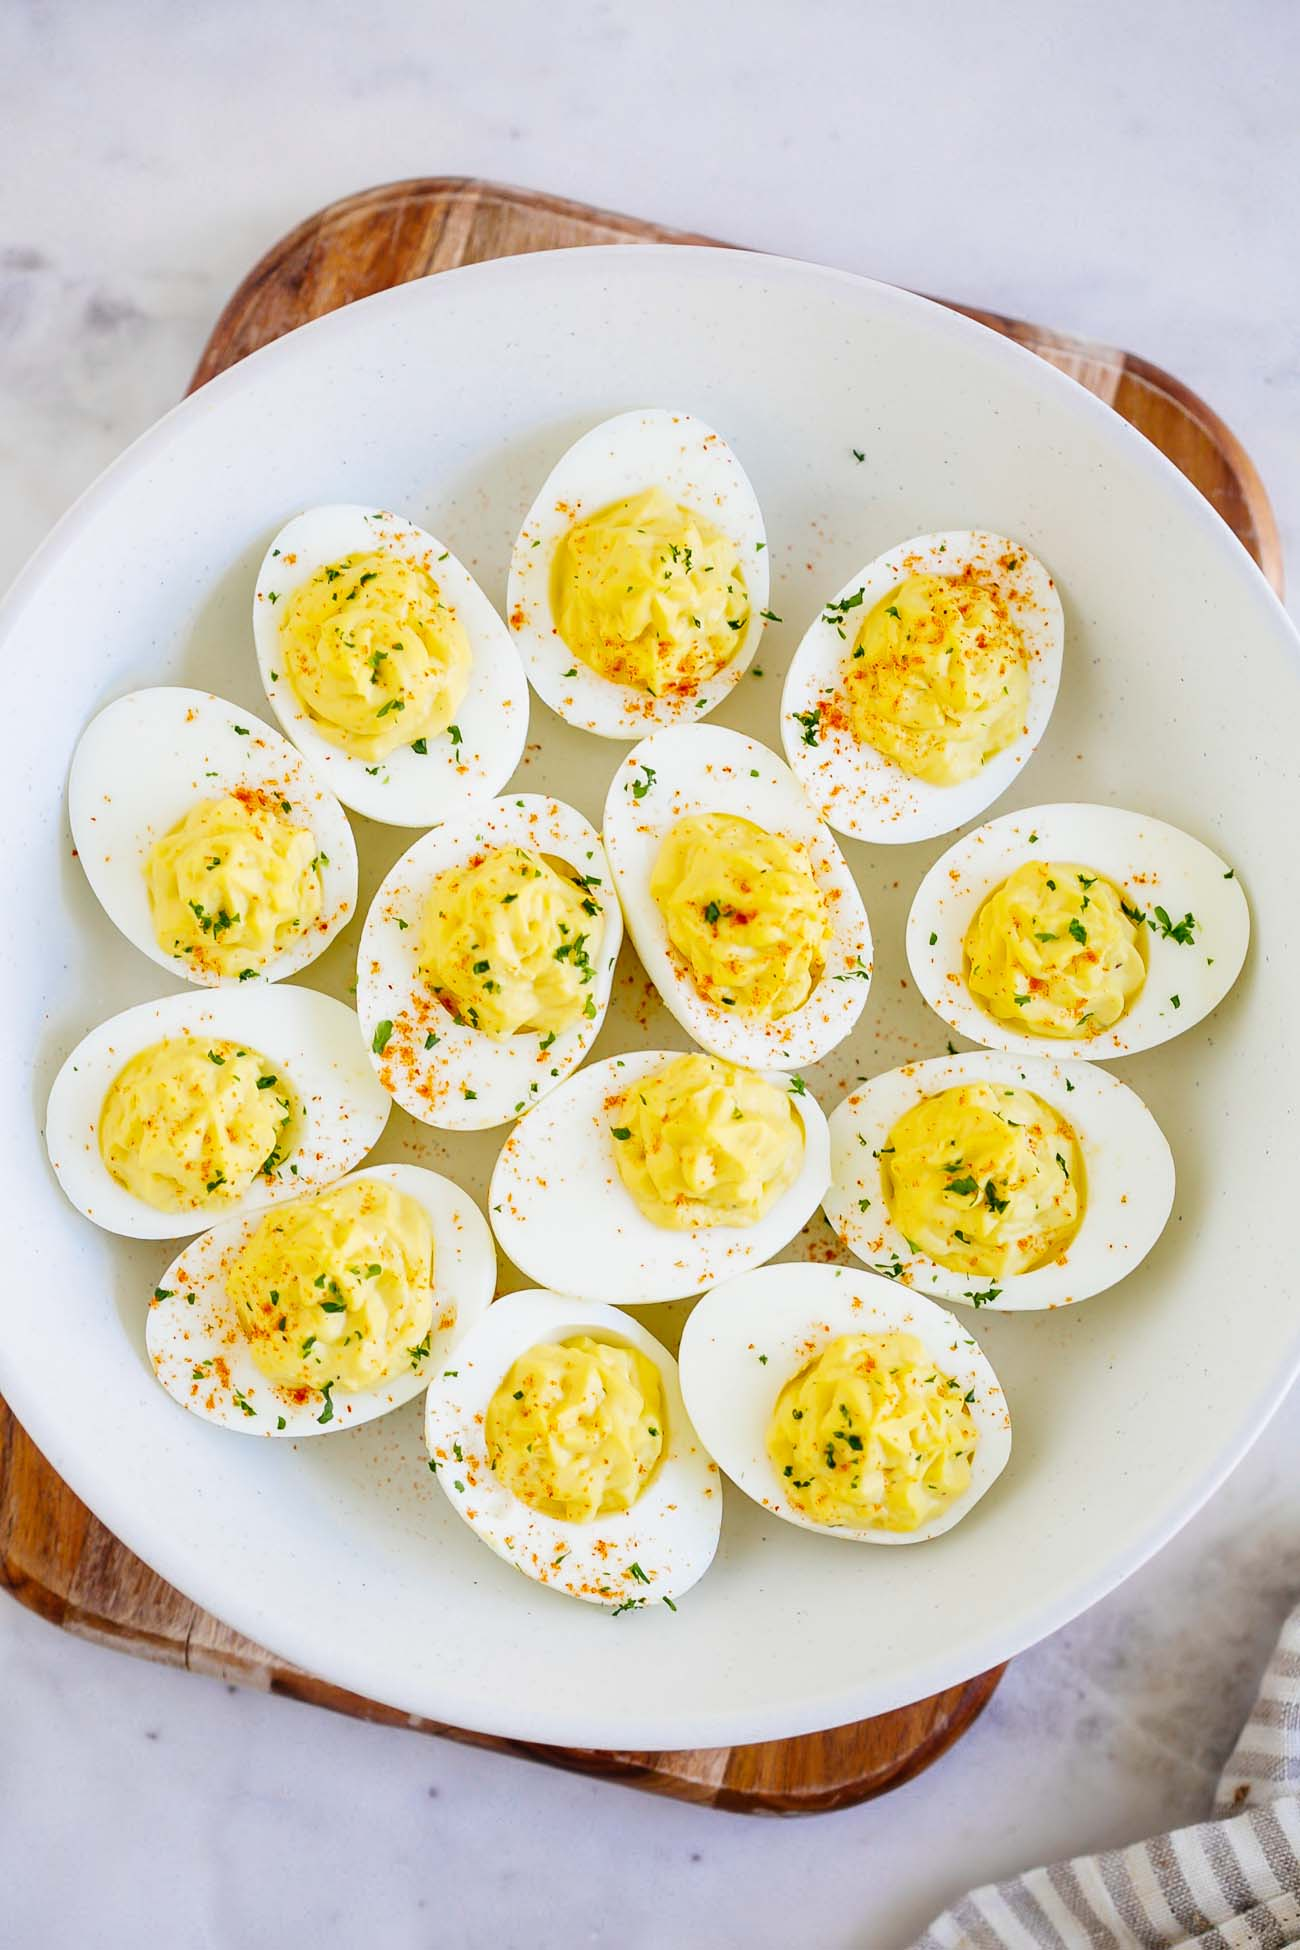 Overhead view of deviled eggs in a bowl.